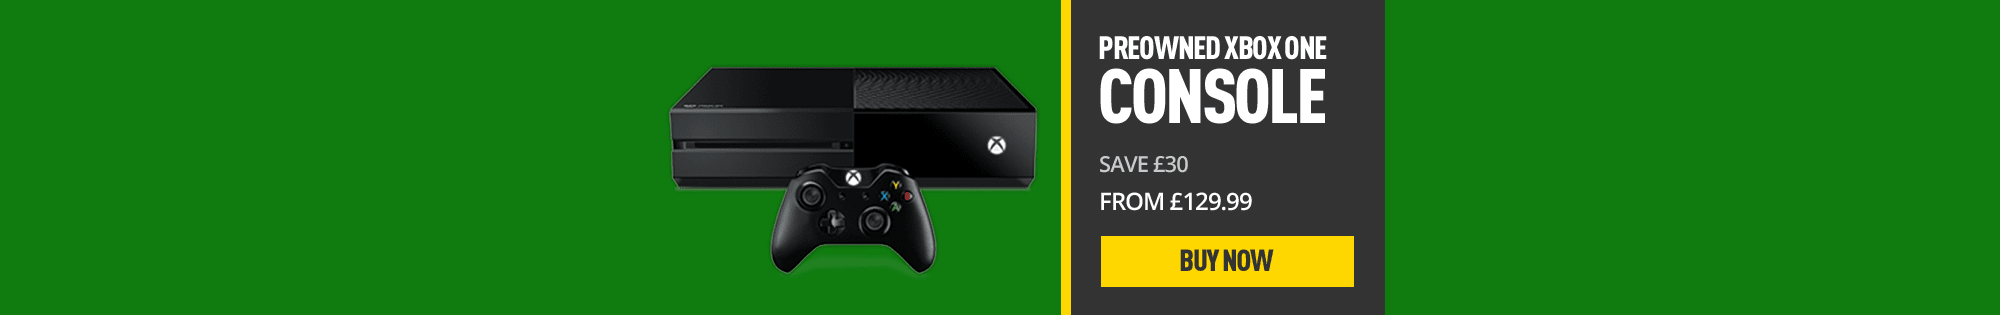 Pre-owned Xbox One Console - Homepage Banner